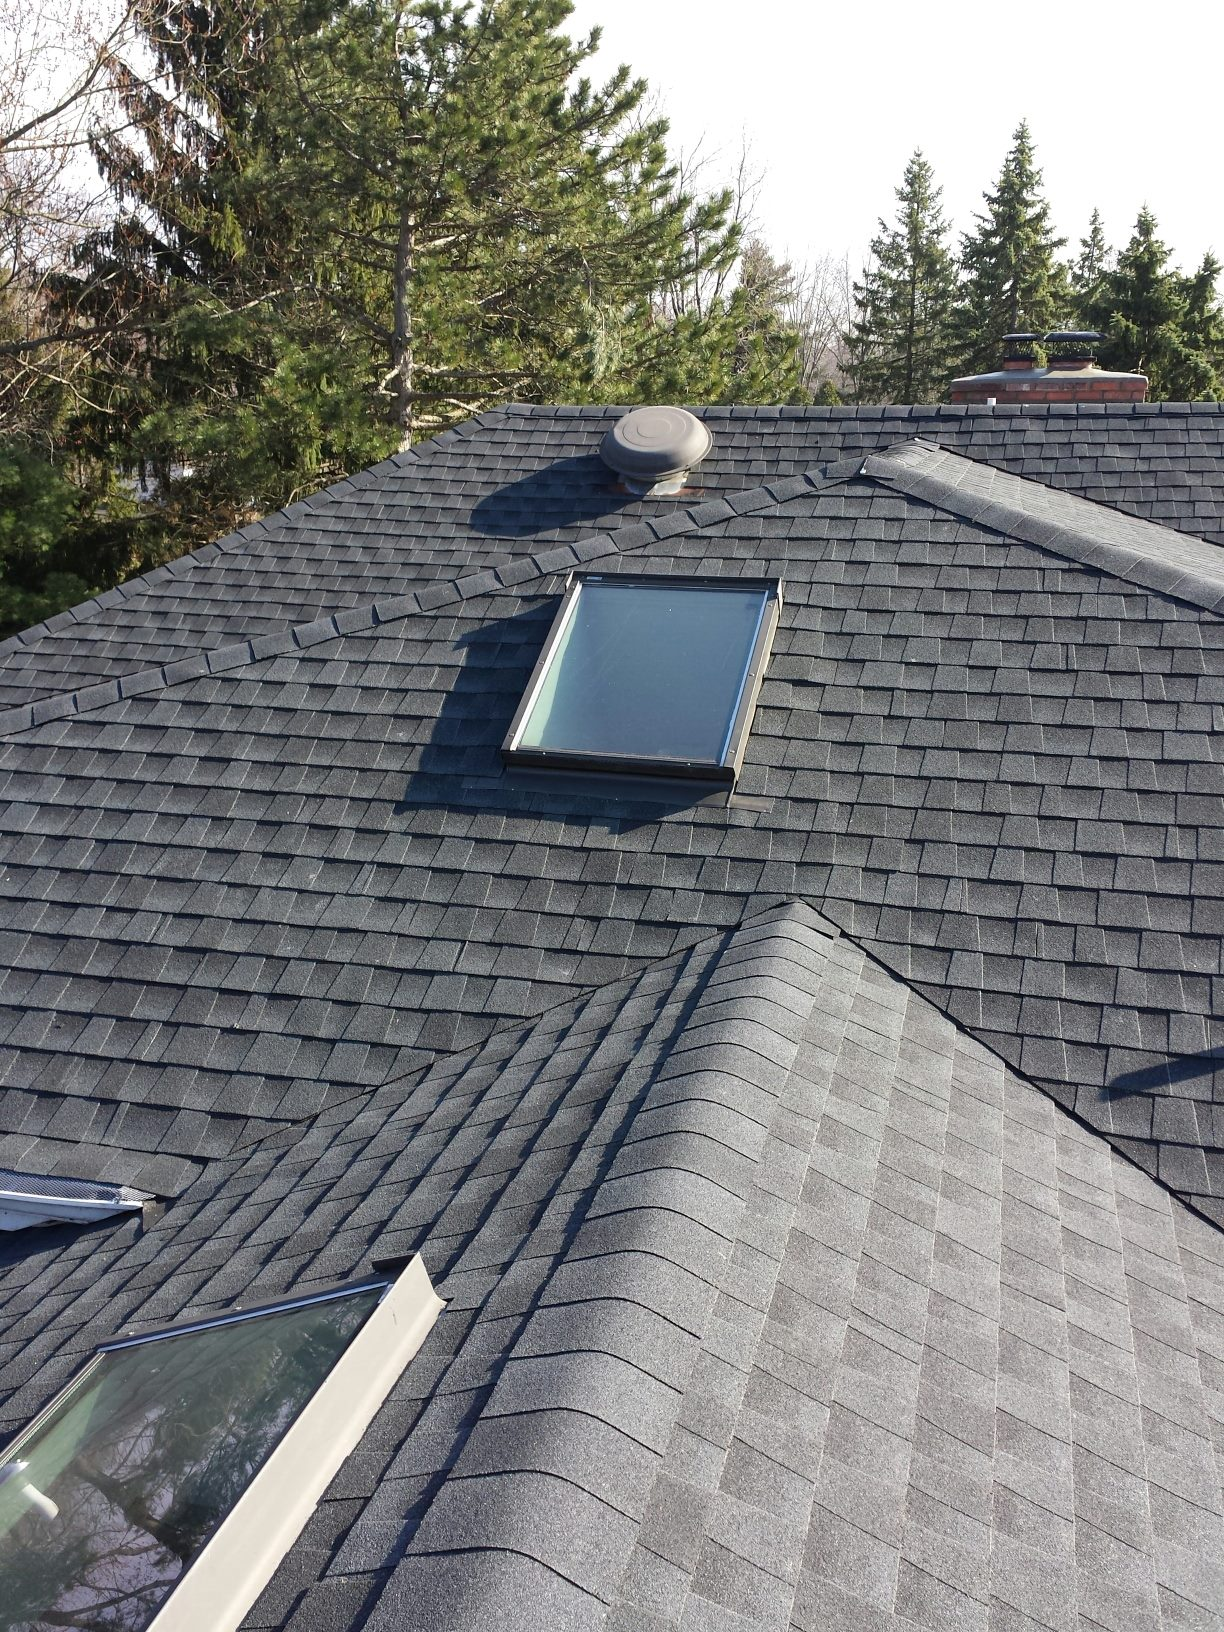 Preventative Medicine for your Roof this Winter | McCollum Roofing ...